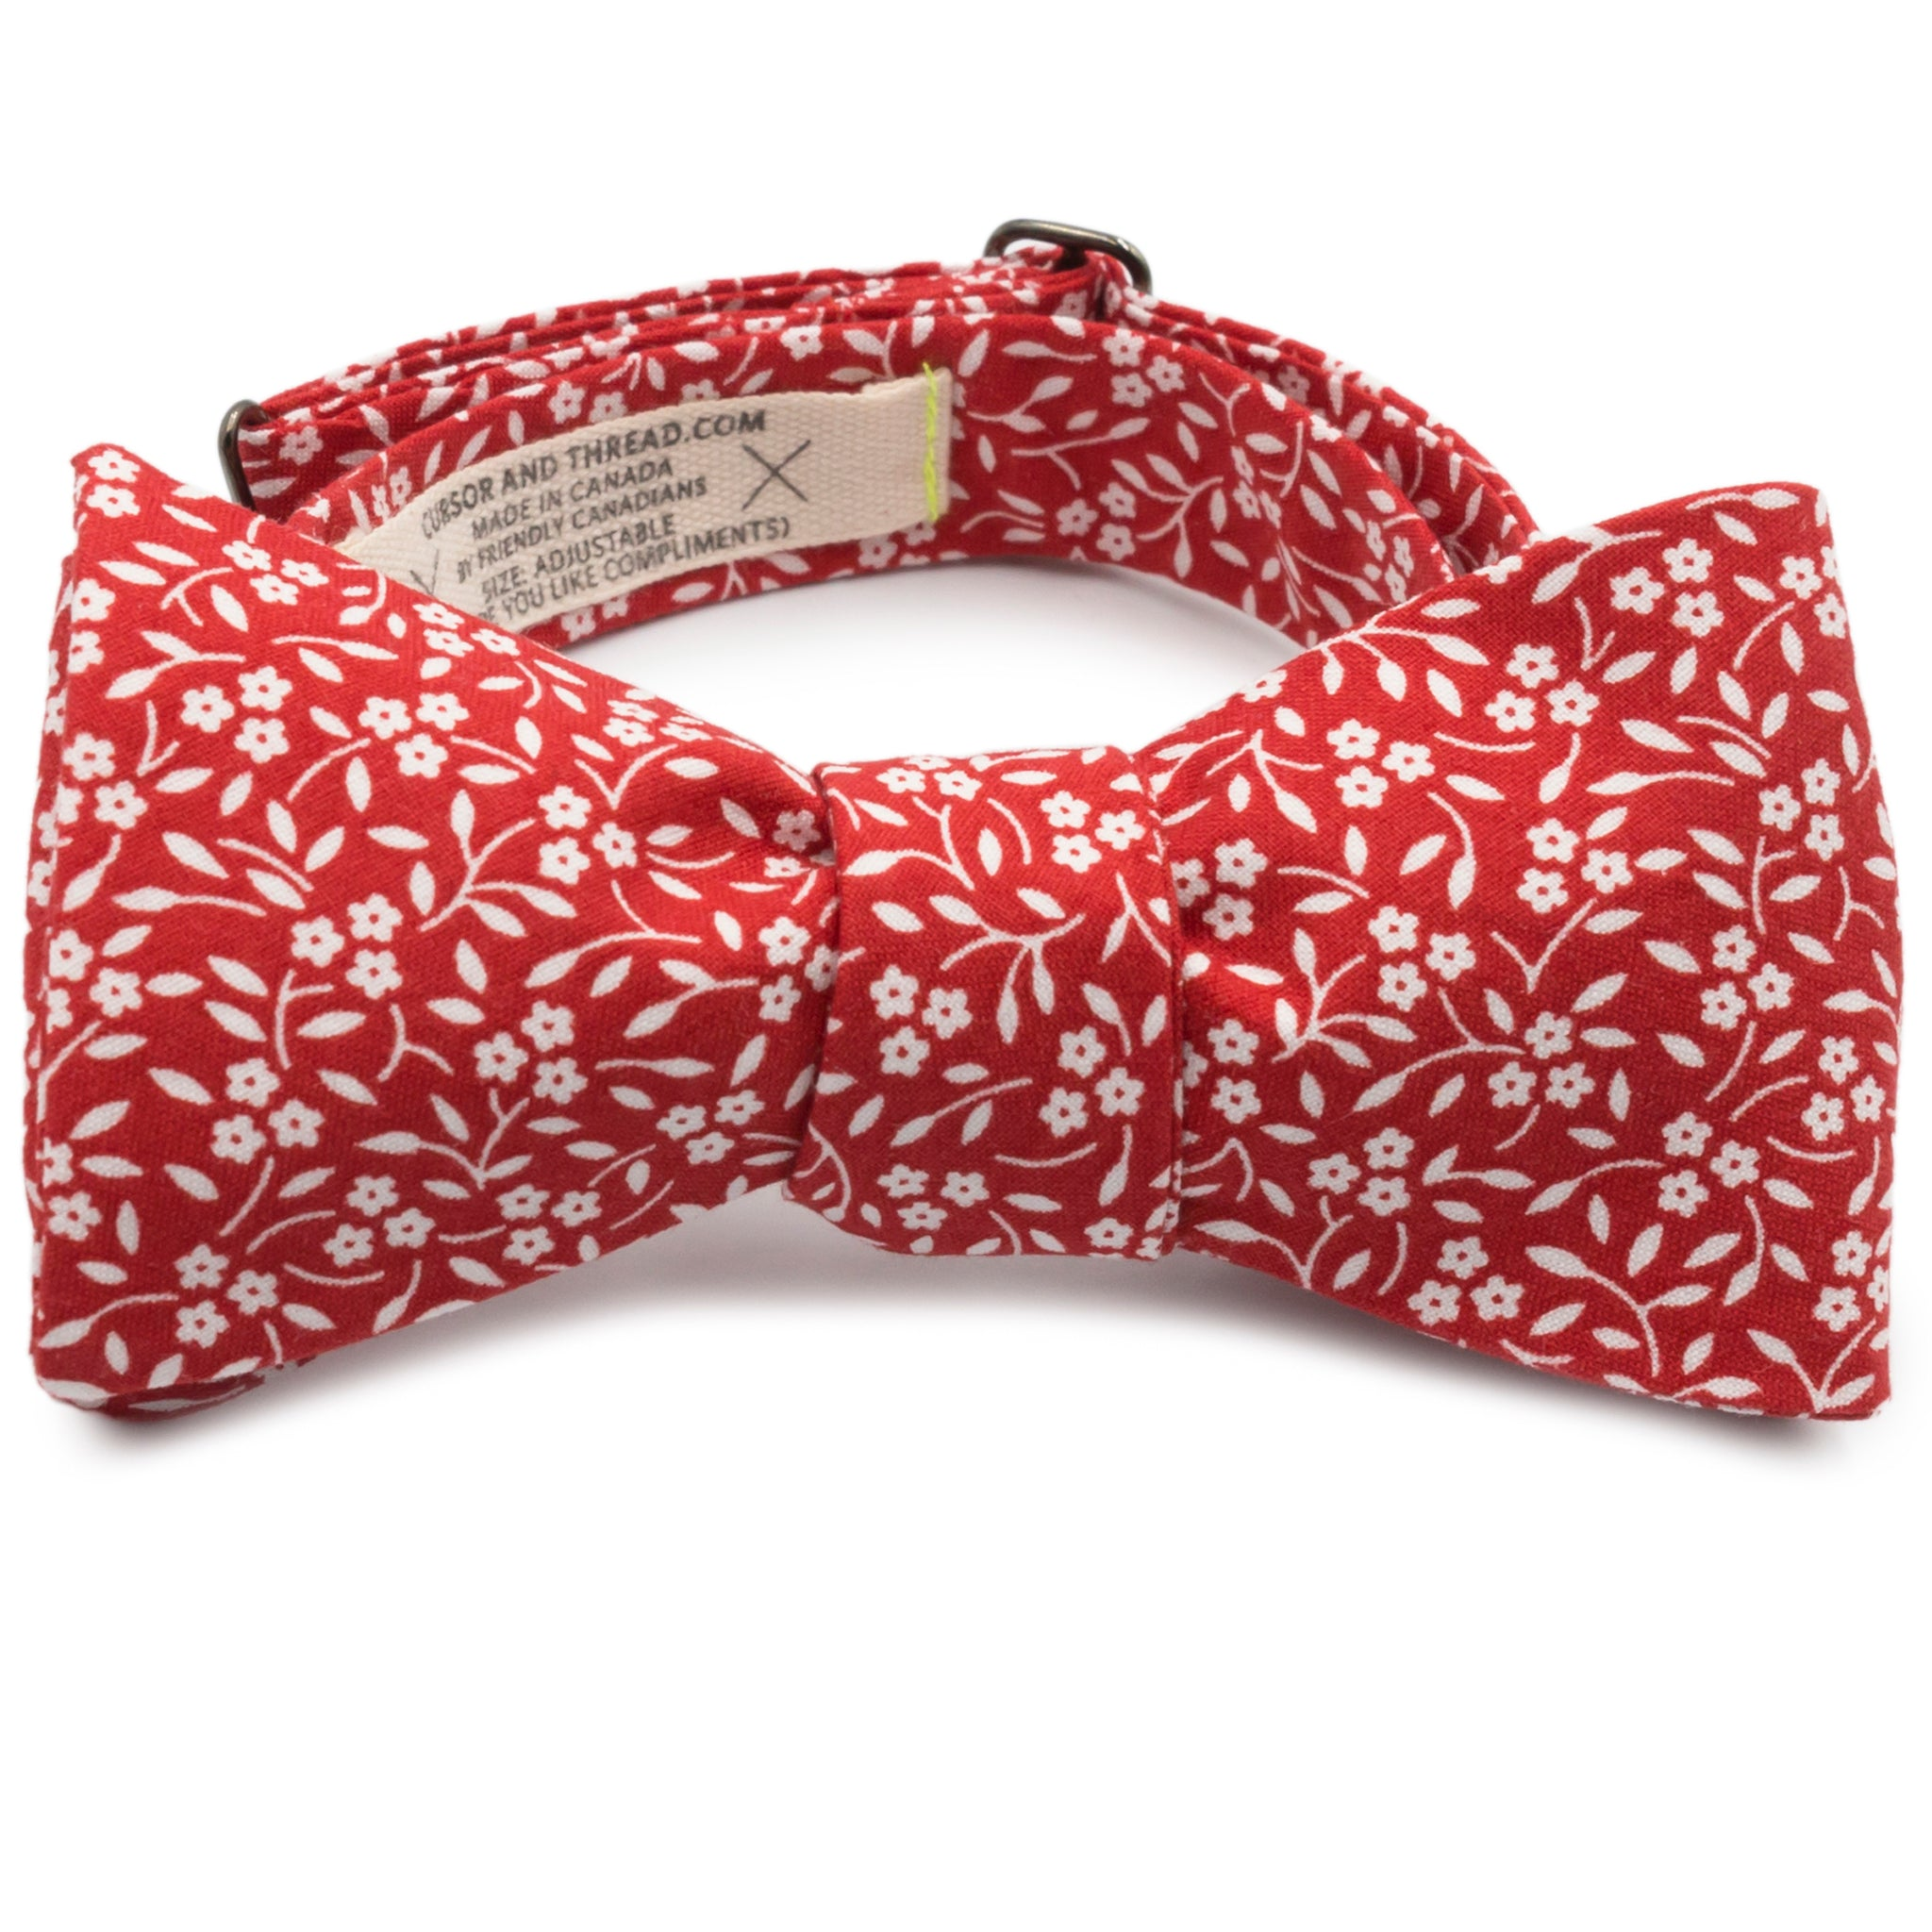 Charmed Red and White Floral Cotton Bow Tie Made in Canada